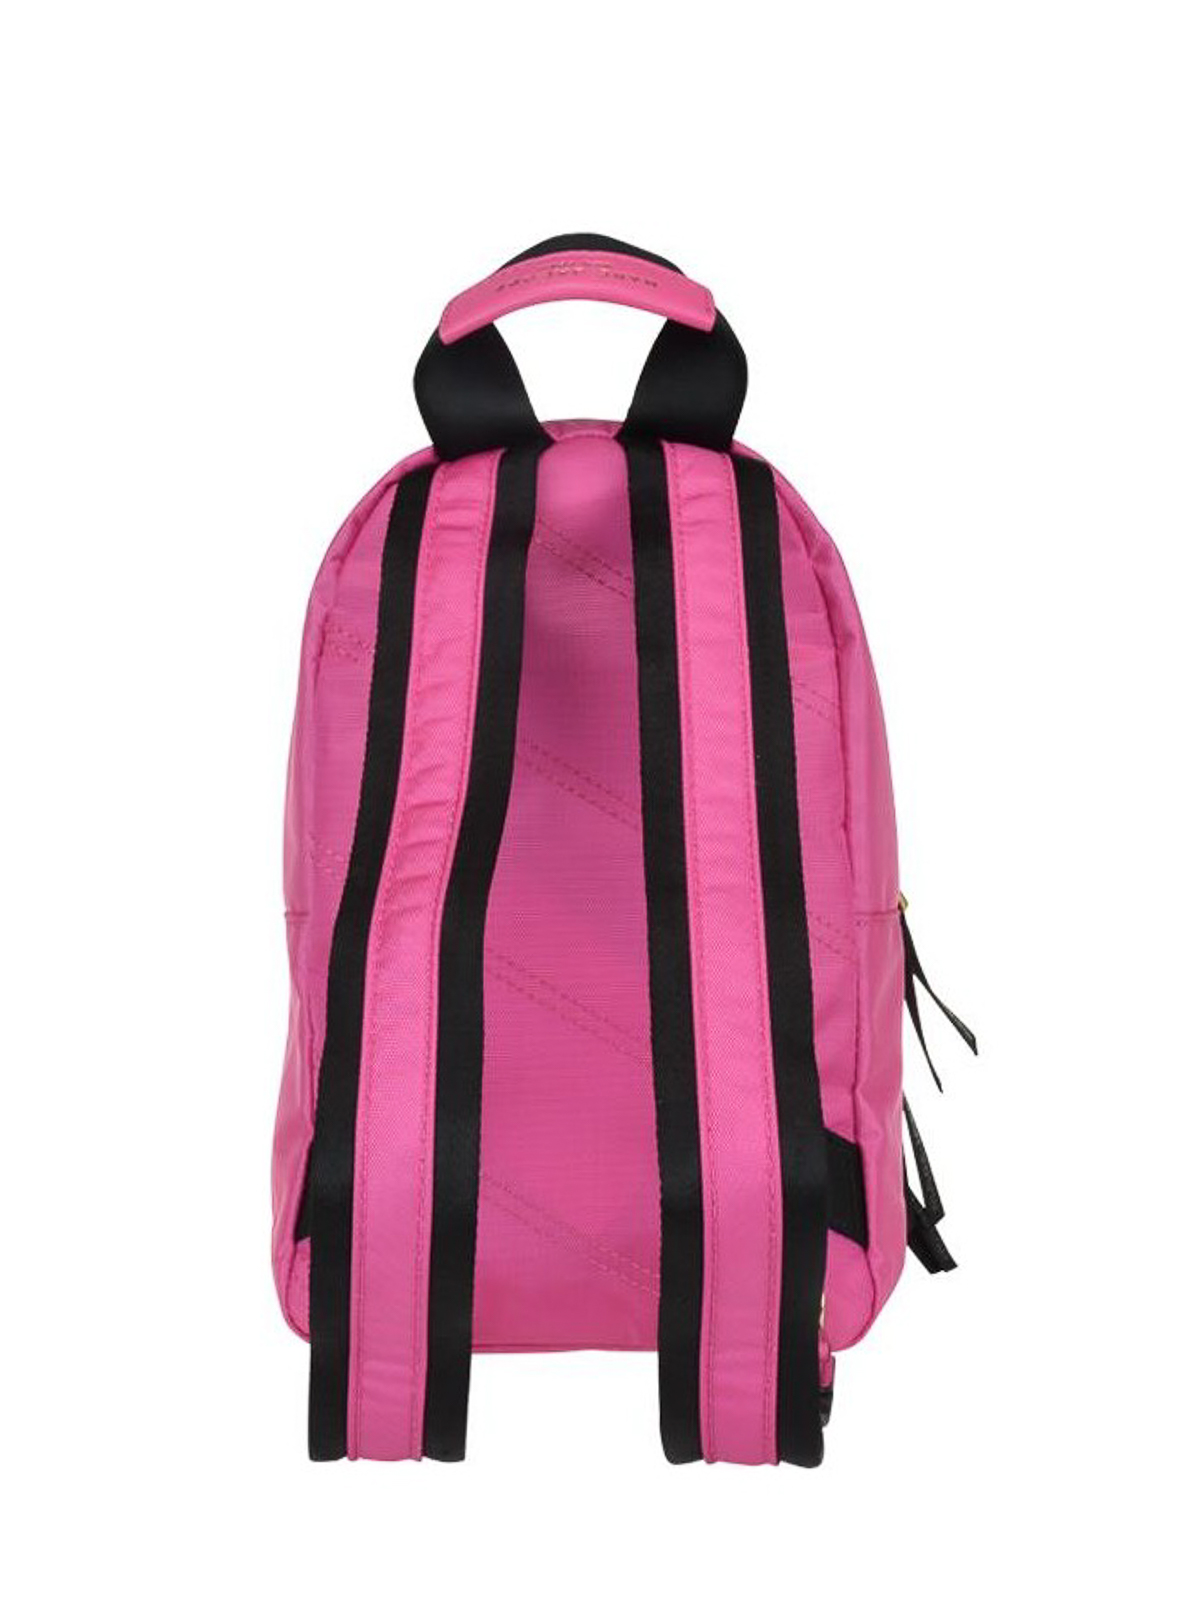 Sacs M0014032 À Jacobs 657 Trek Sac Marc Pack Mini Dos qO0cFwA